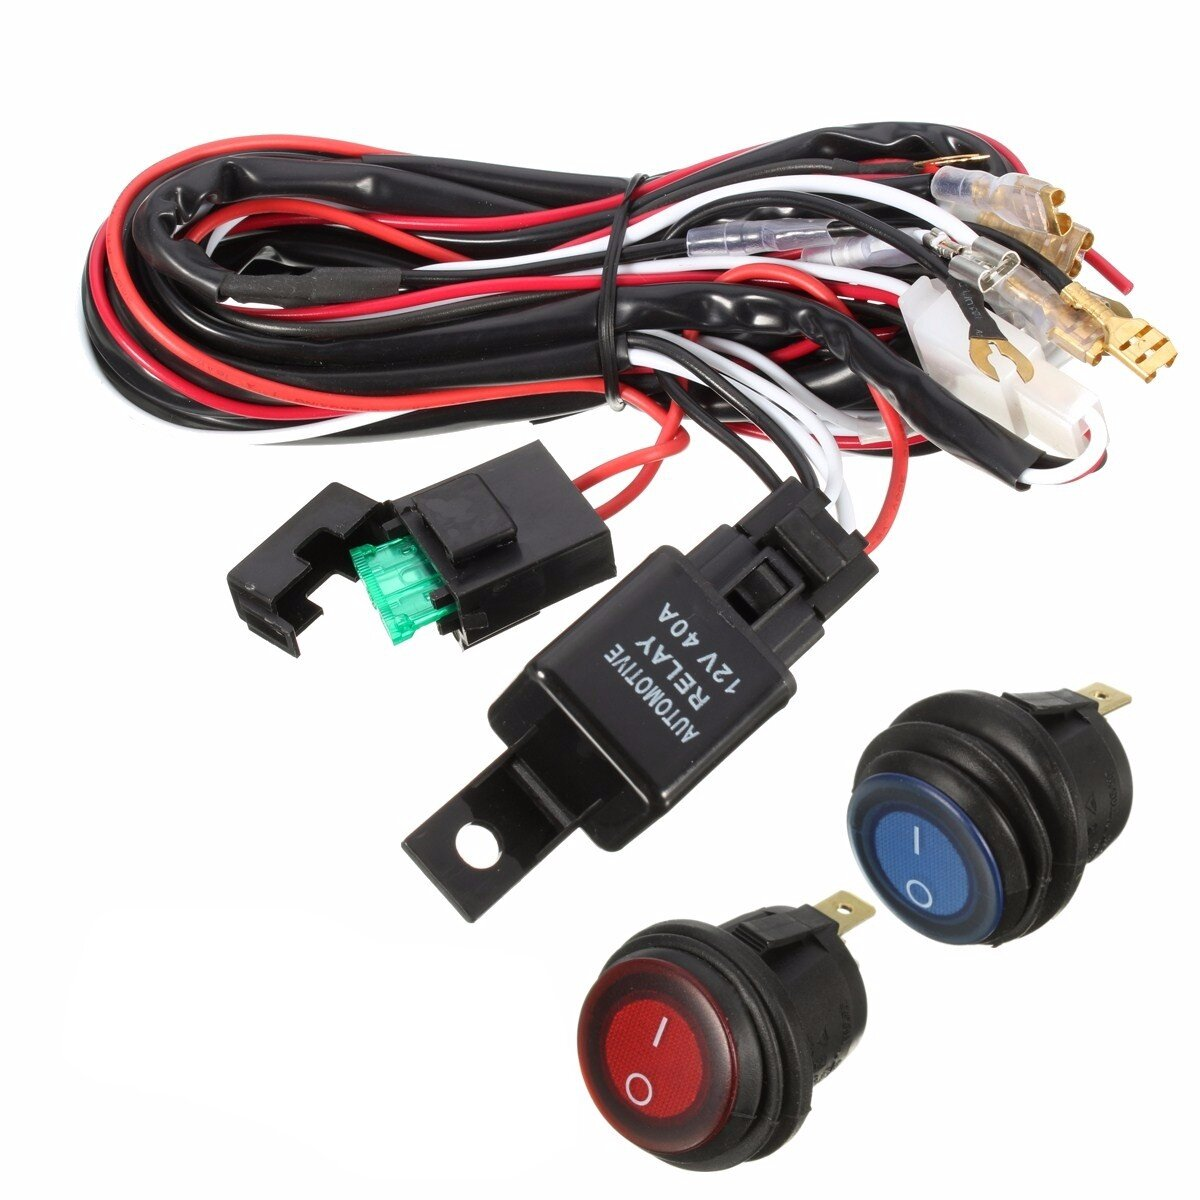 hight resolution of 40a 12v led light bar wiring harness relay on off switch for jeep off road vehicles atv cod